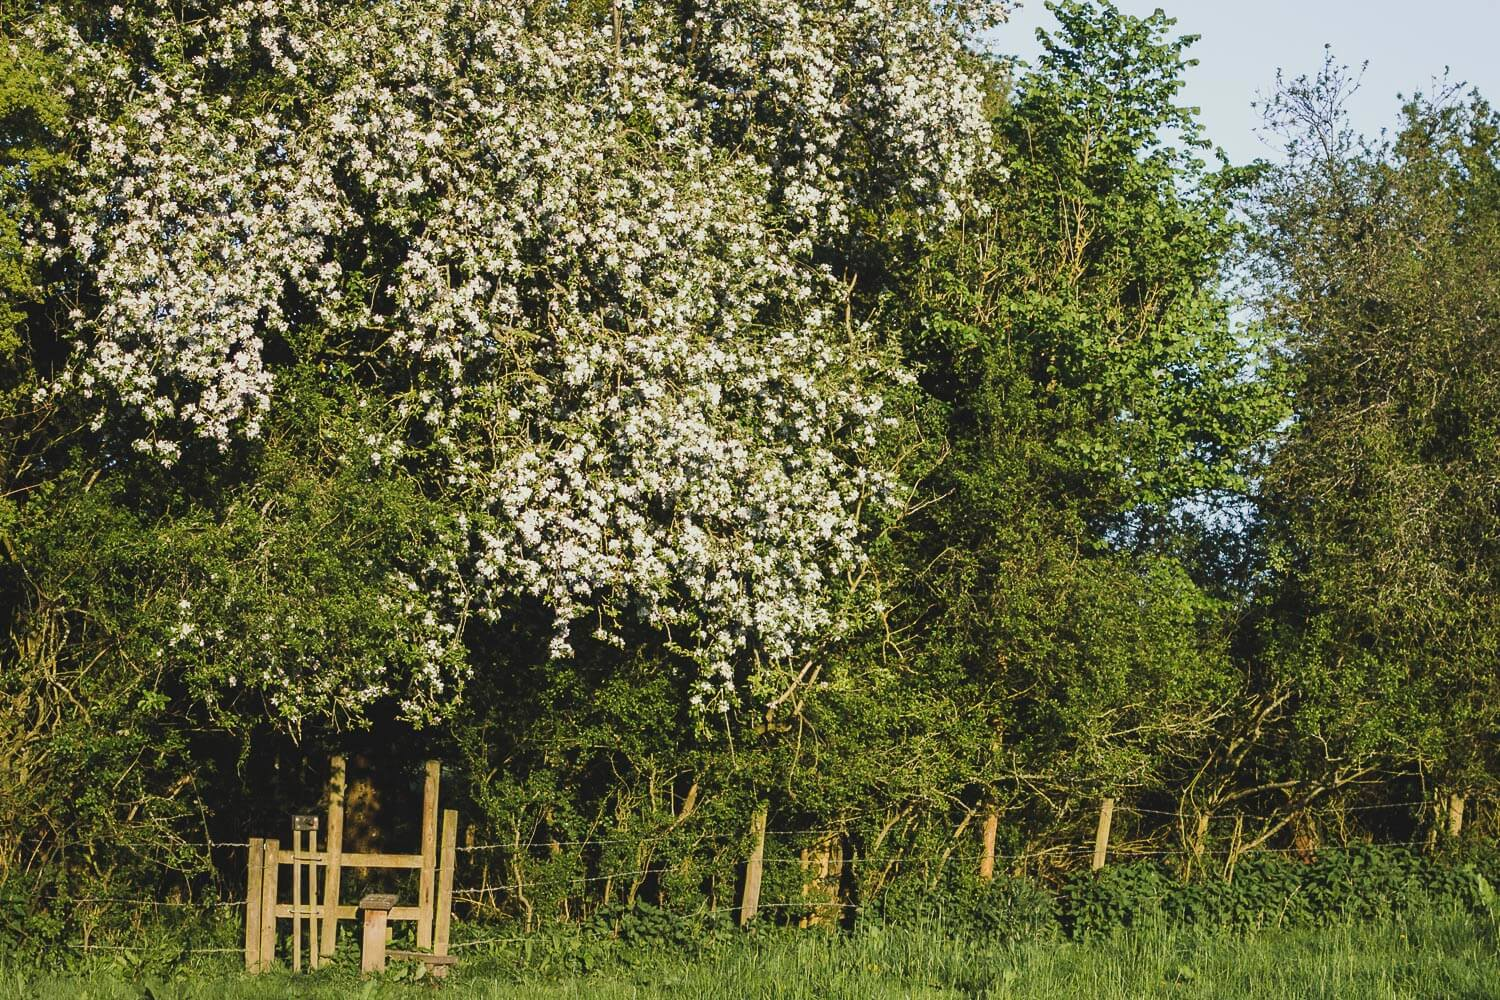 Apple tree in blossom over a style in the Hampshire countryside